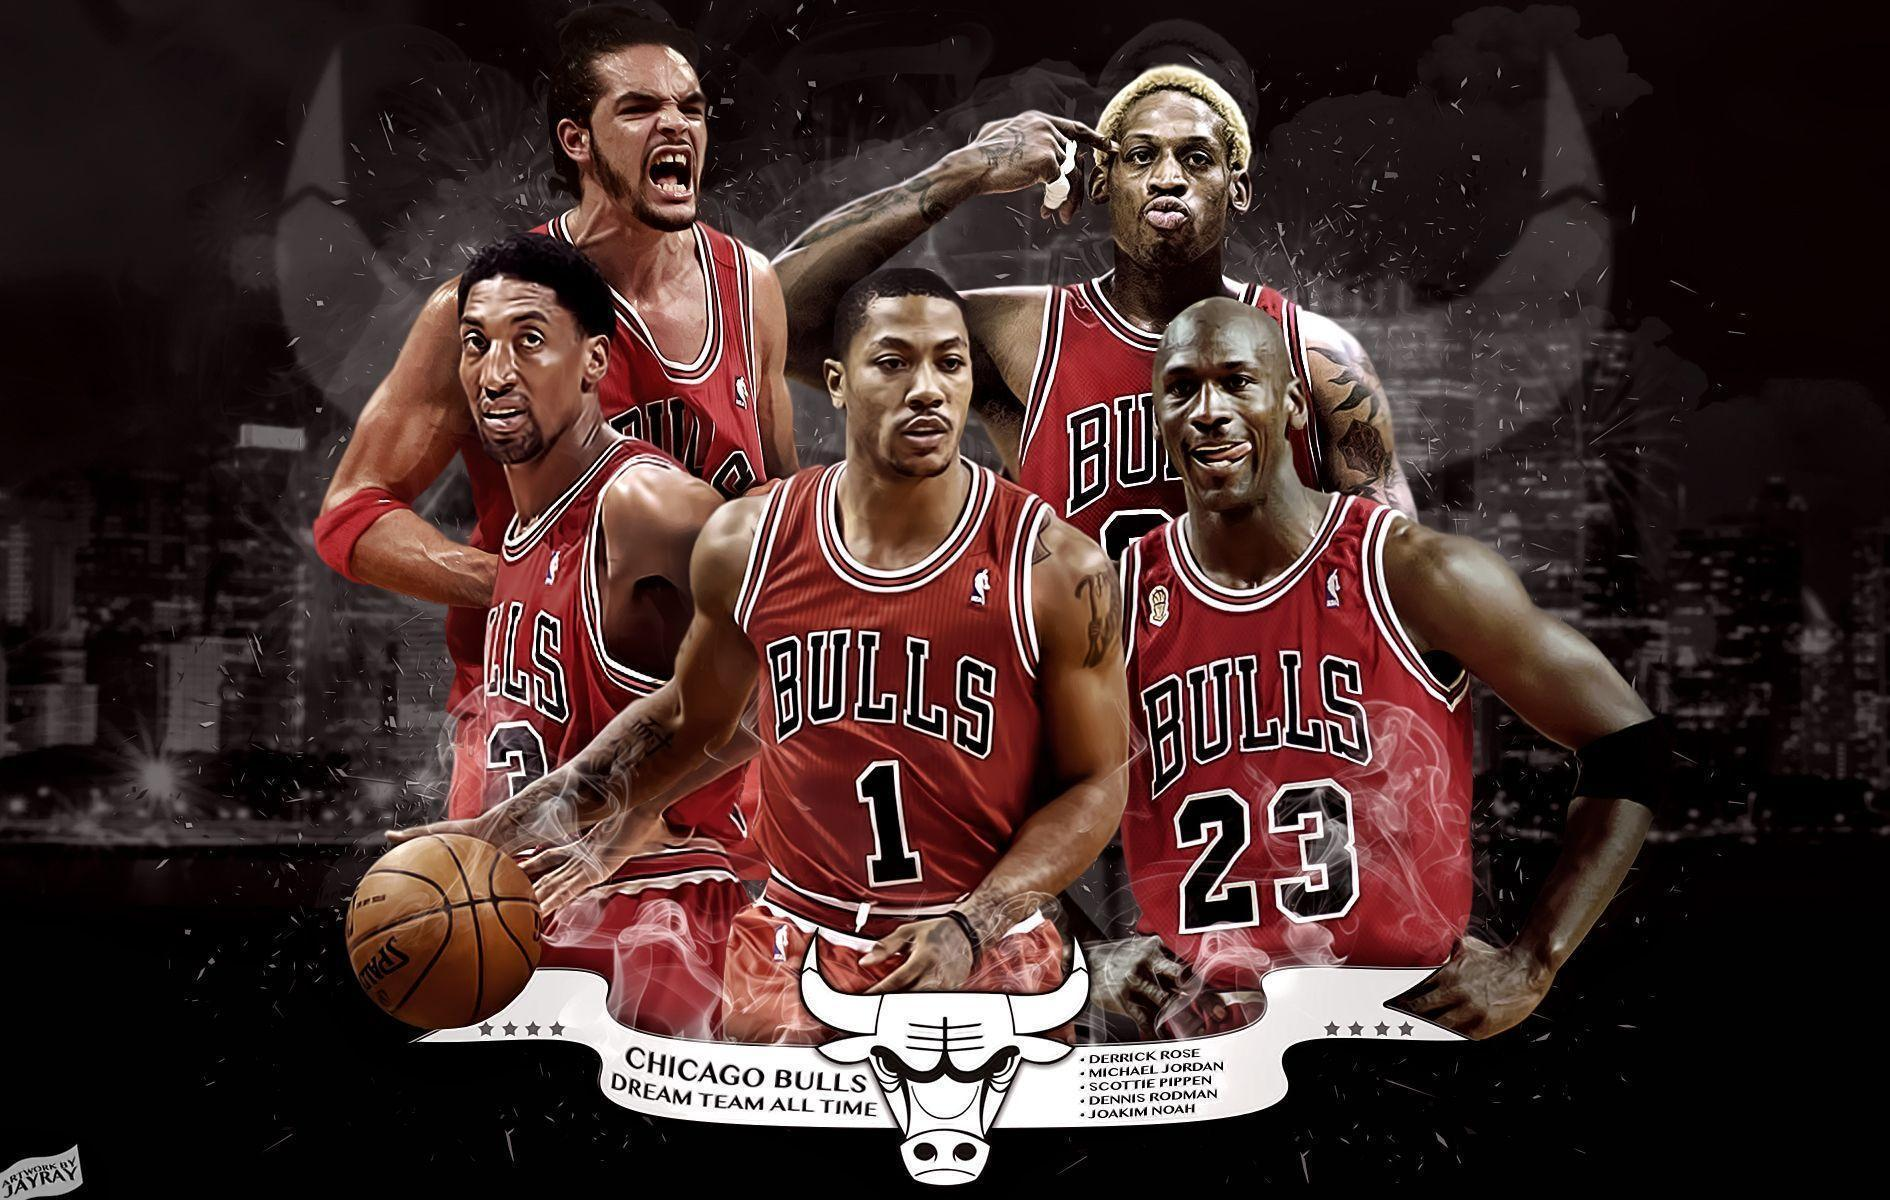 HD Chicago Bulls Backgrounds